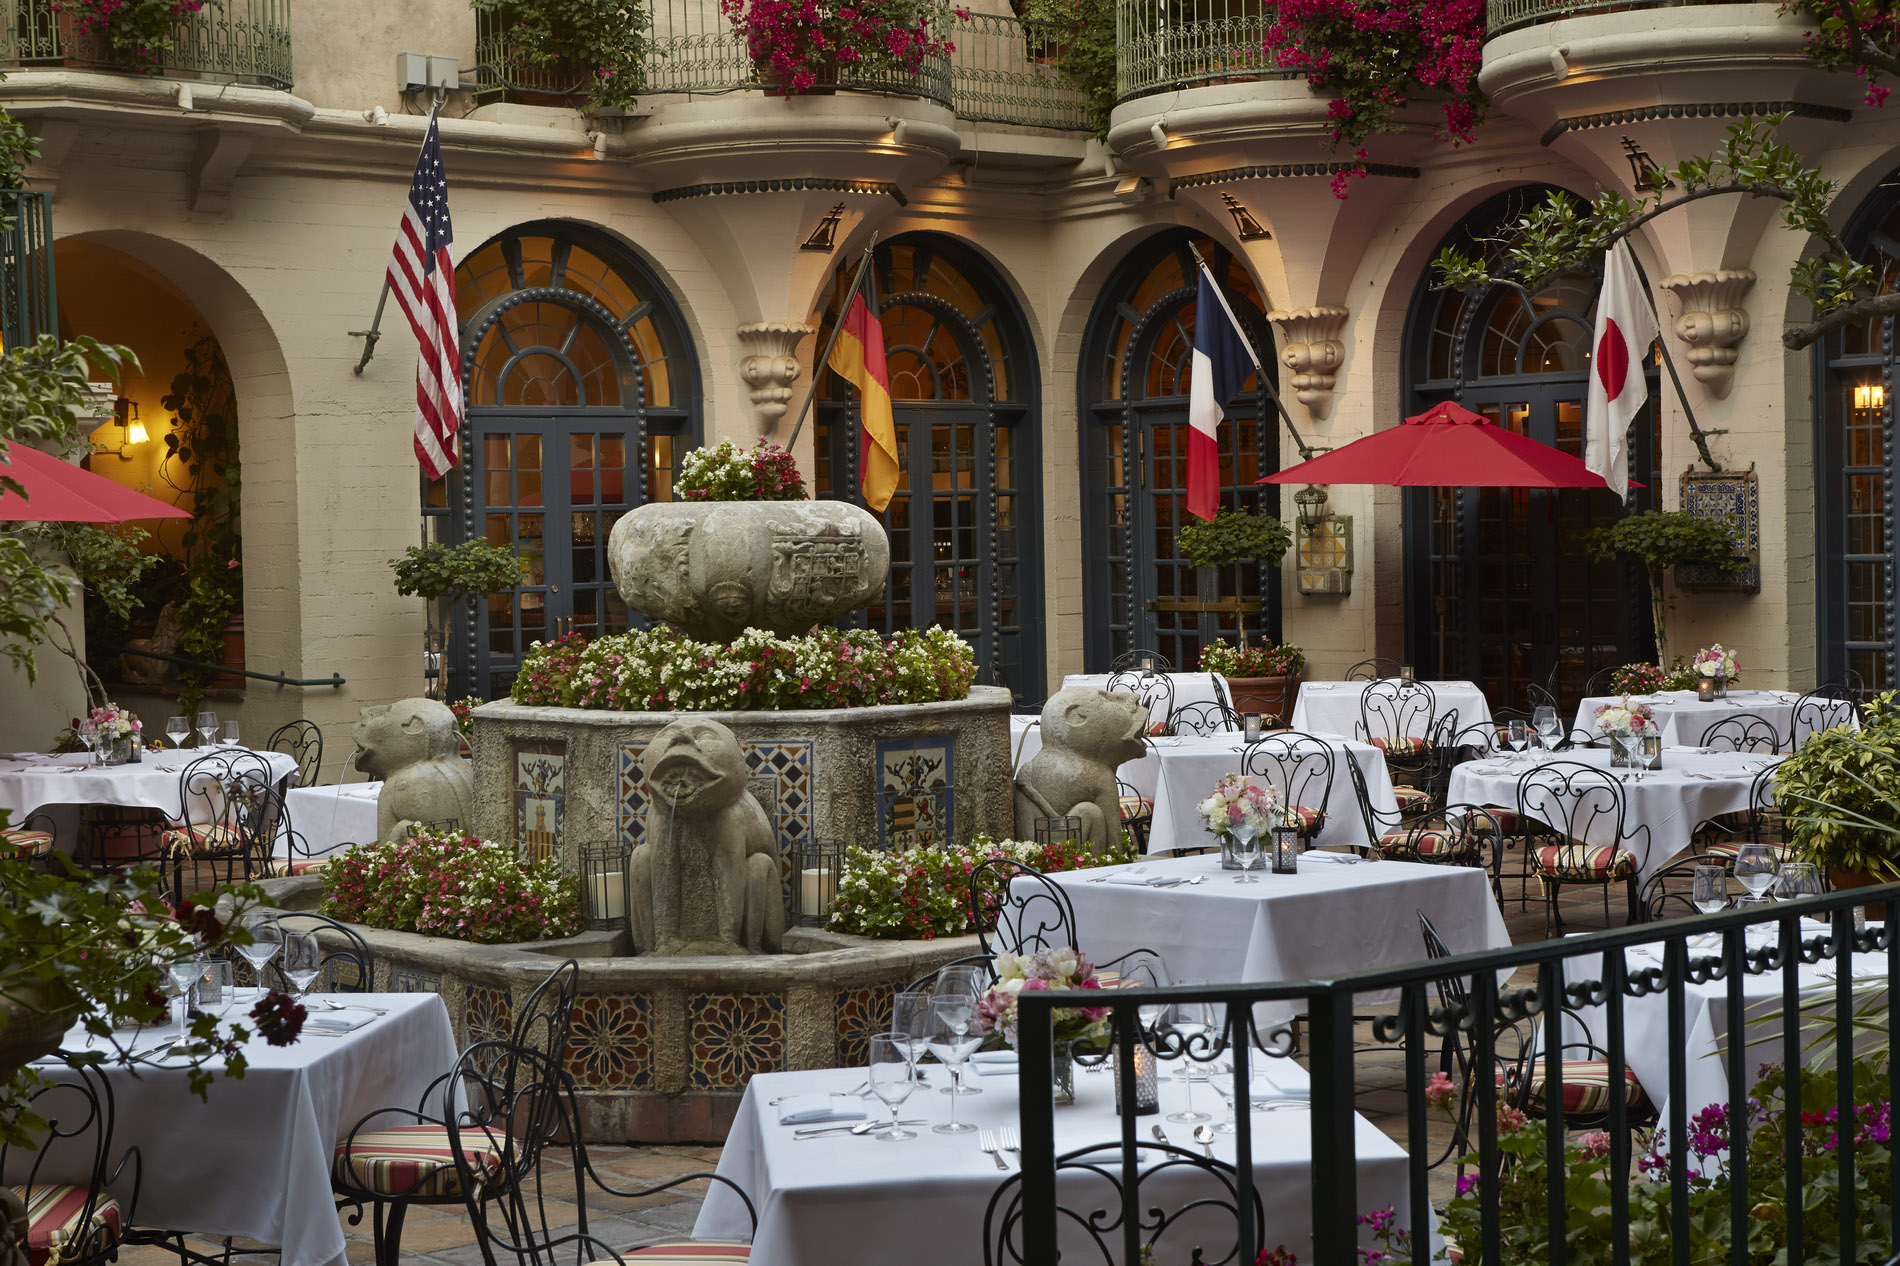 outdoor patio at Mission Inn with tables and chairs